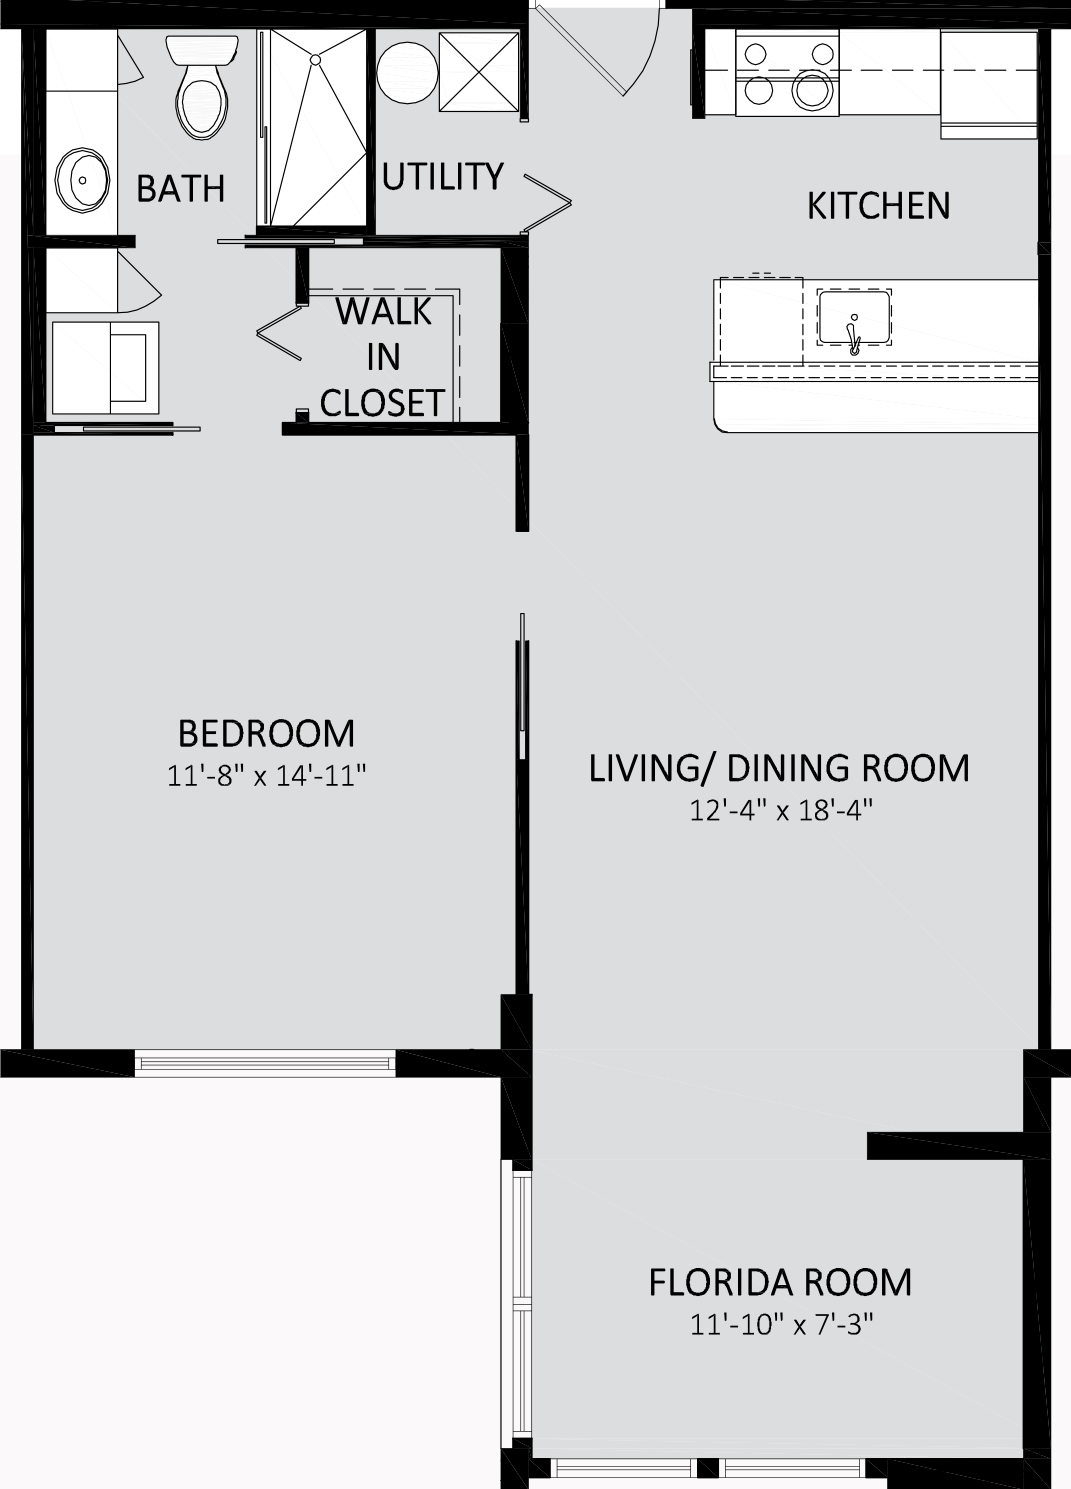 Coral Reef II Traditional One Bedroom A Building 719 Sq Ft.png